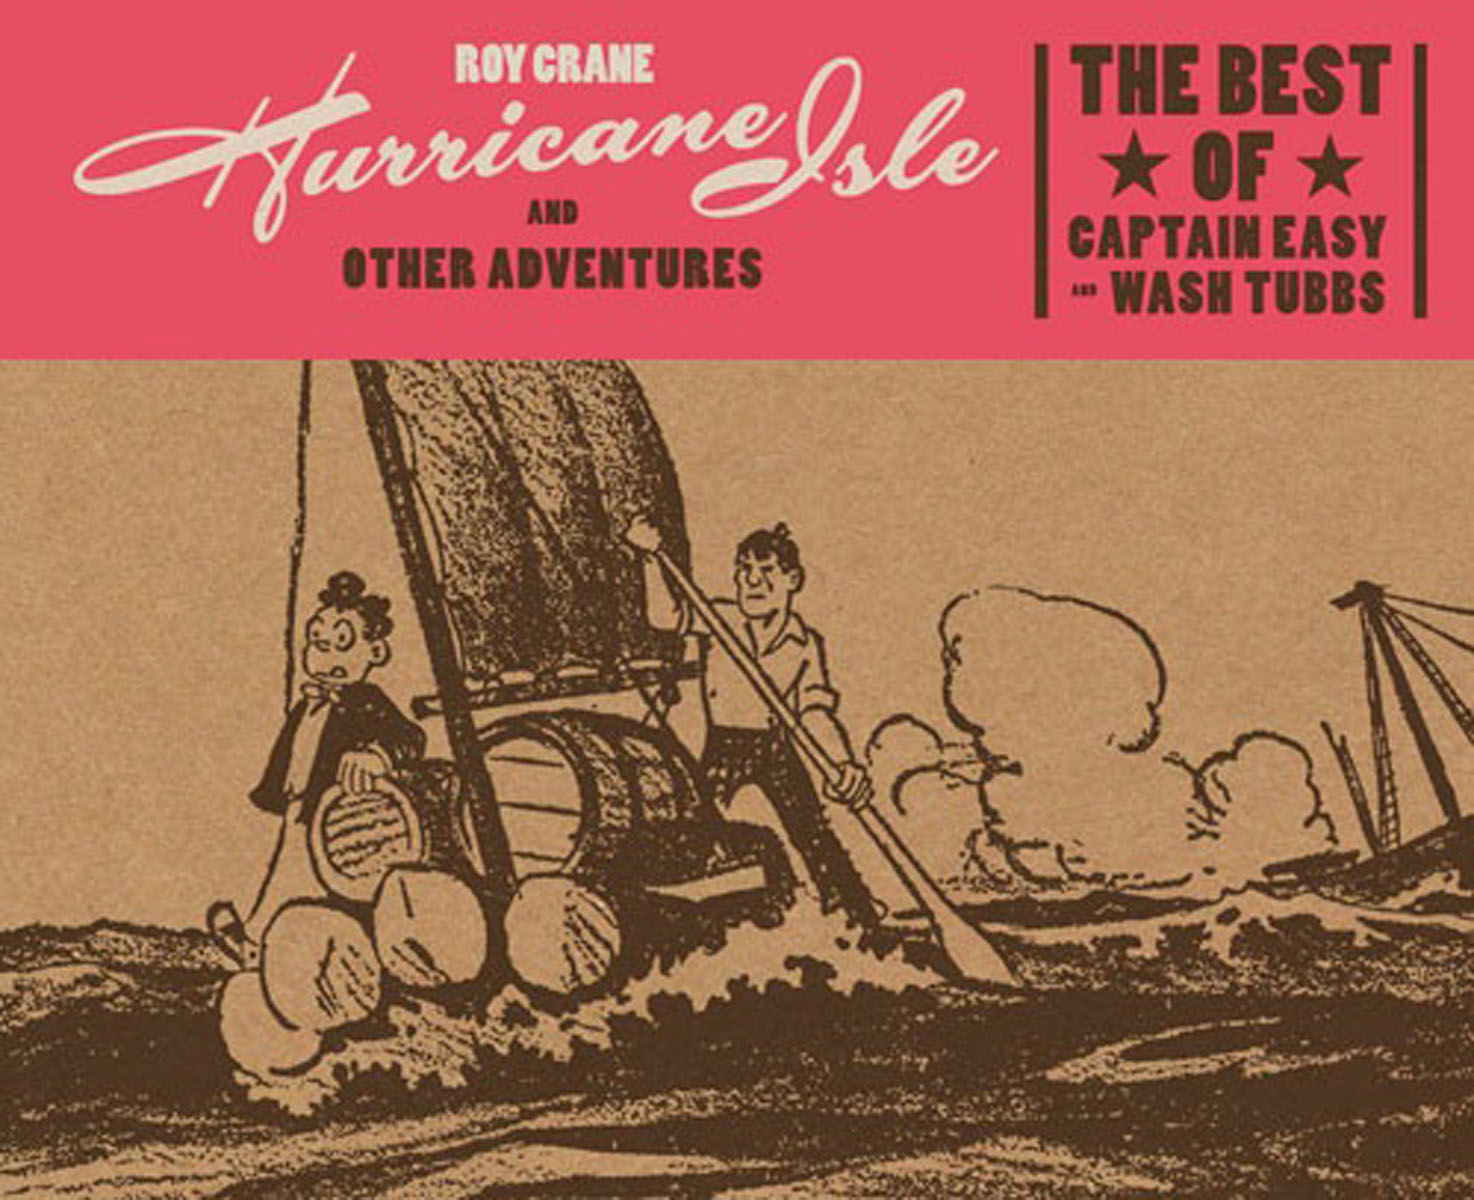 Hurricane Isle and Other Adventures: The Best of Captain Easy and Wash Tubbs dayle a c the adventures of sherlock holmes рассказы на английском языке